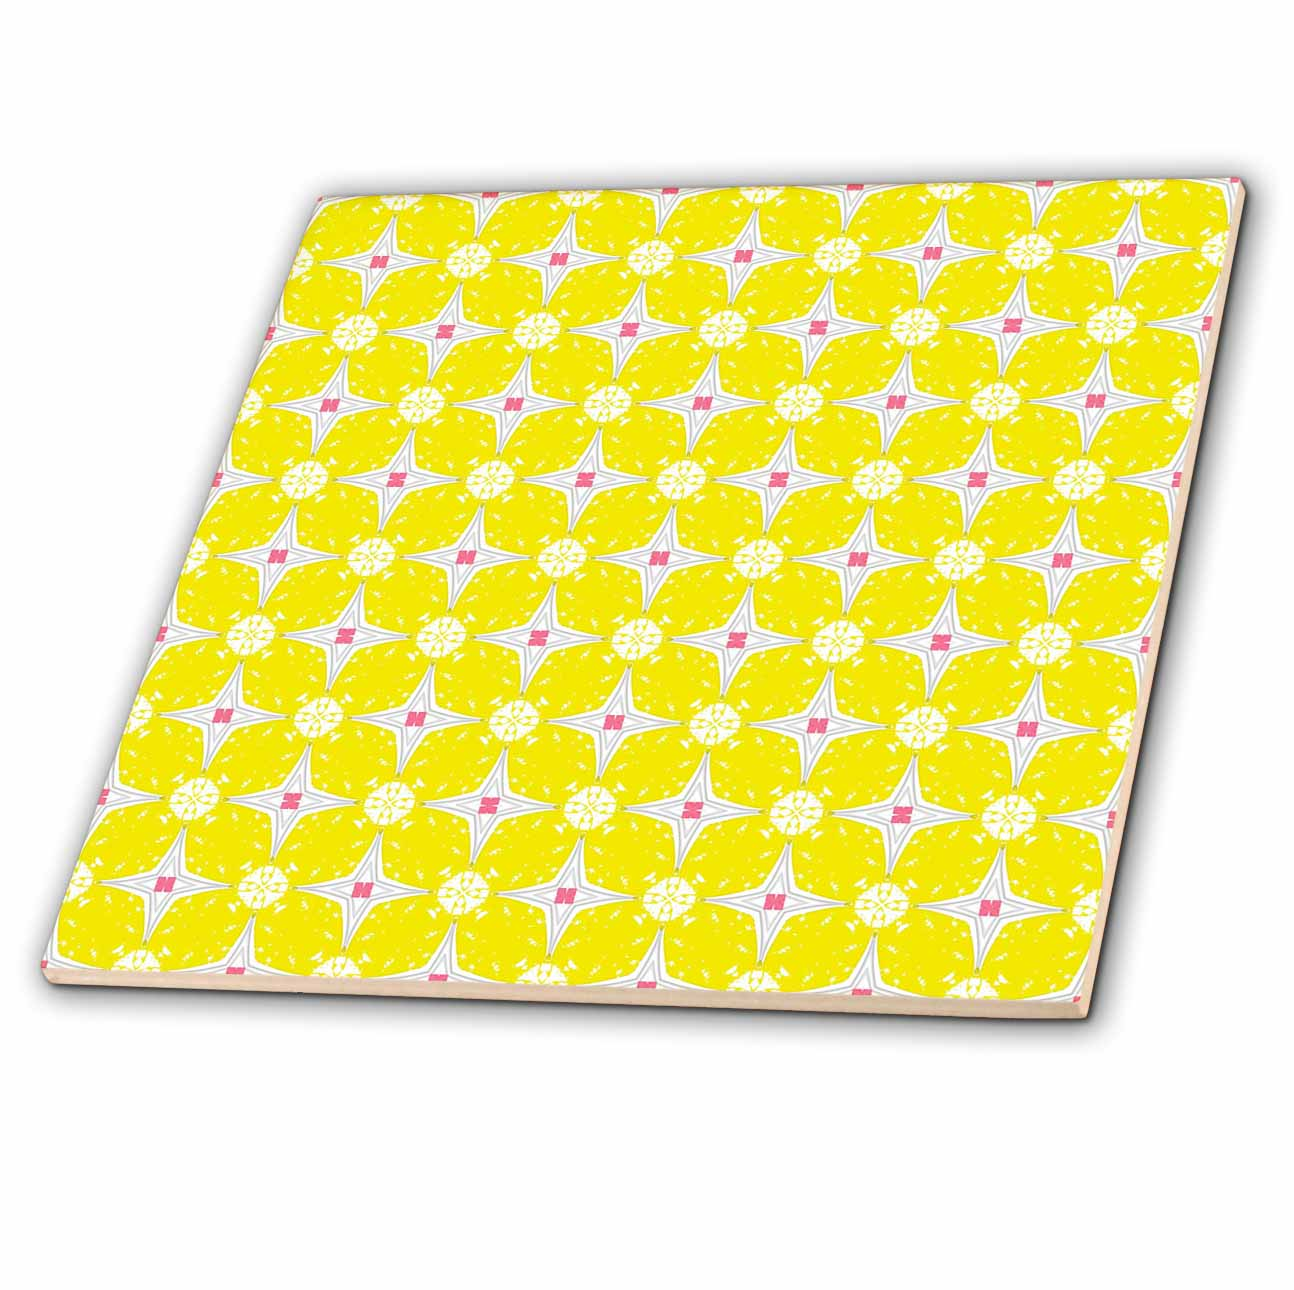 3dRose Bright White Four Point Stars With Pink Accent Against A Soft Yellow Background Kaleidoscope Pattern - Ceramic Tile, 12-inch